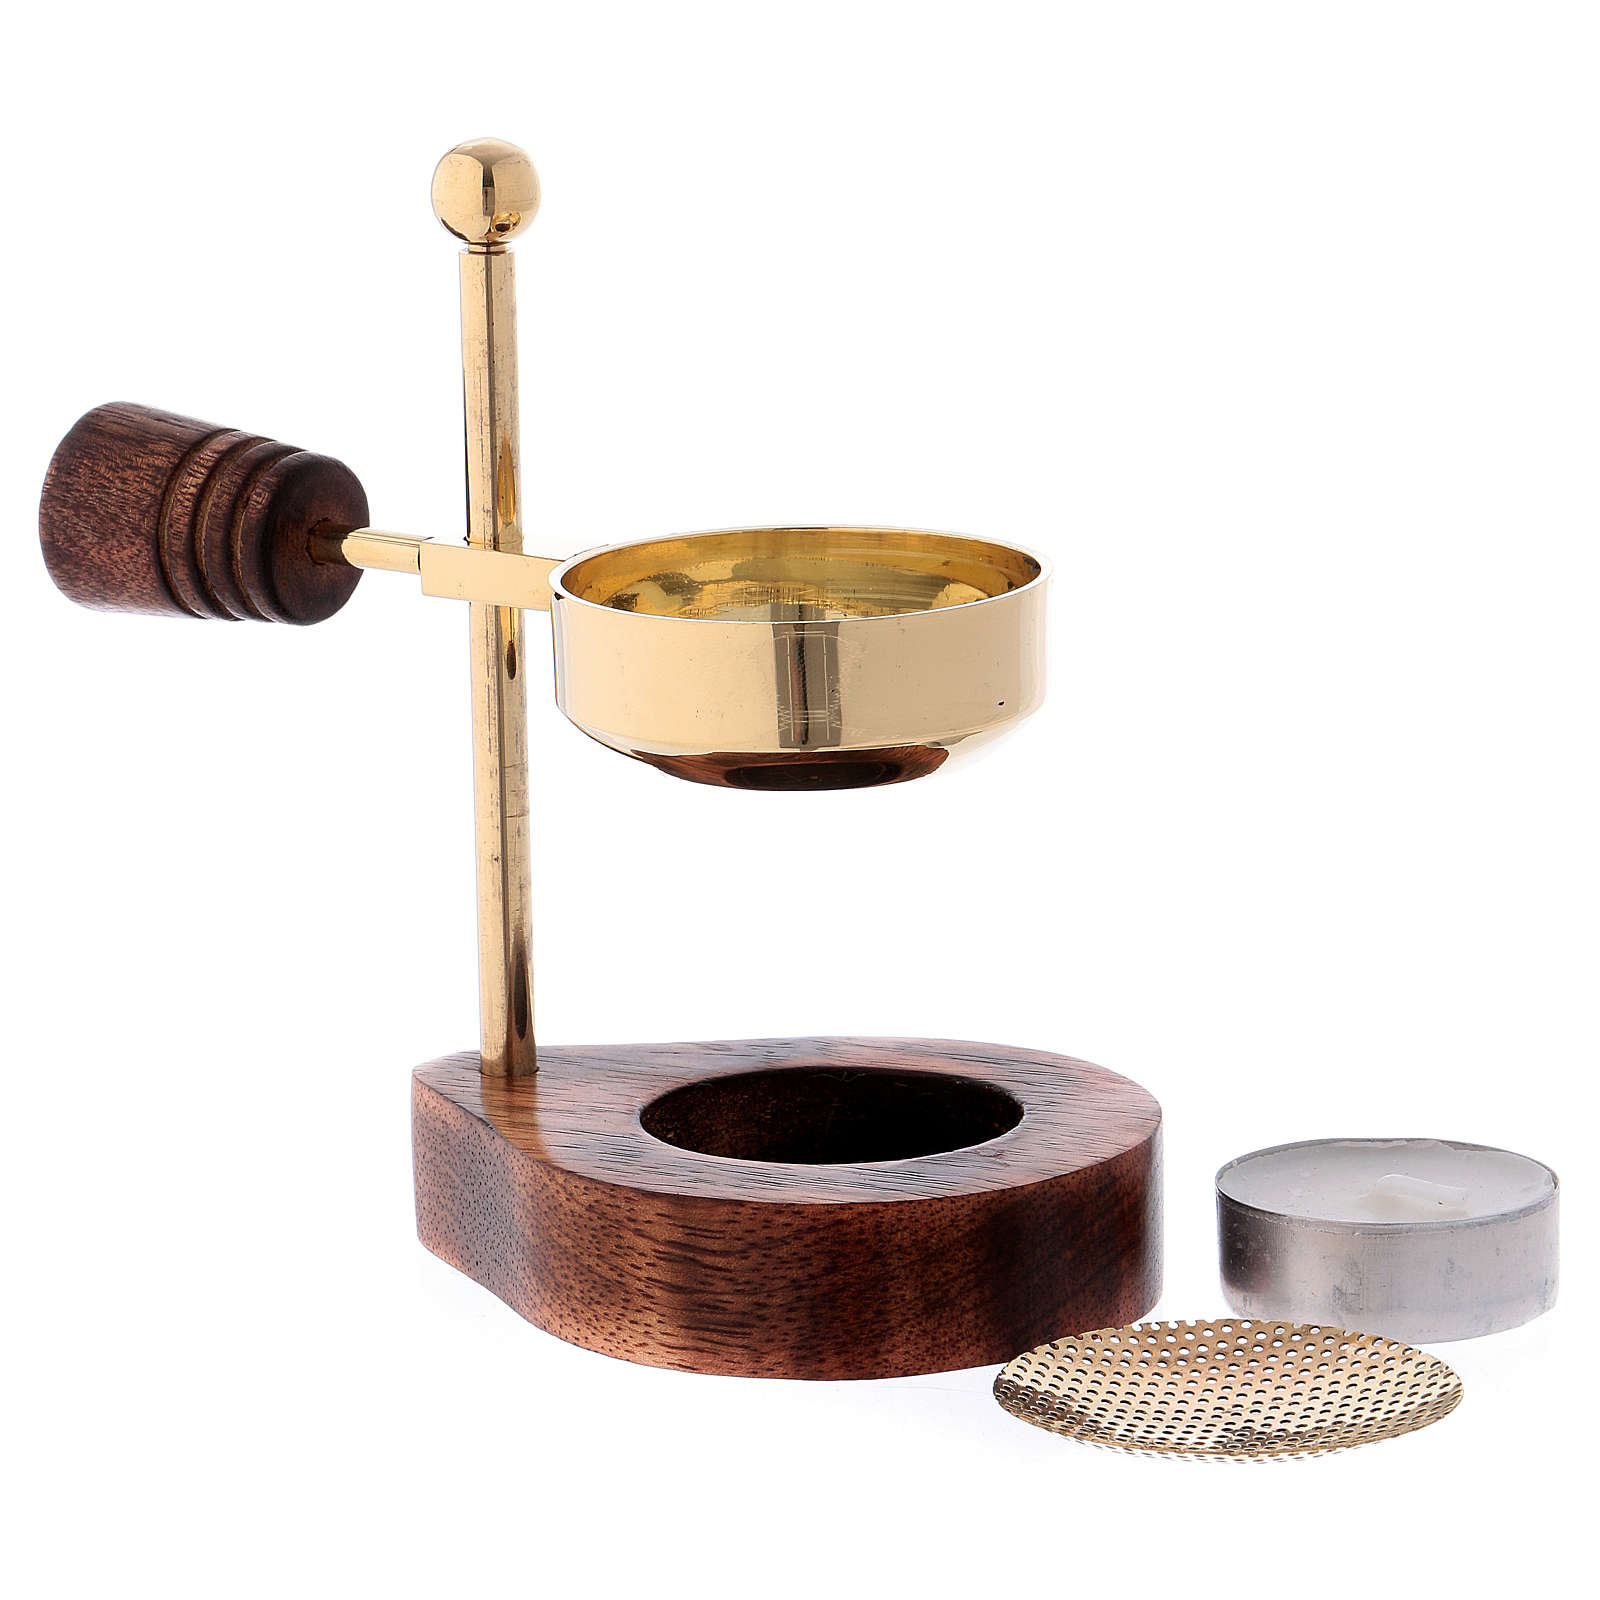 Incense burner with wooden base and pan in brass 12 cm 3